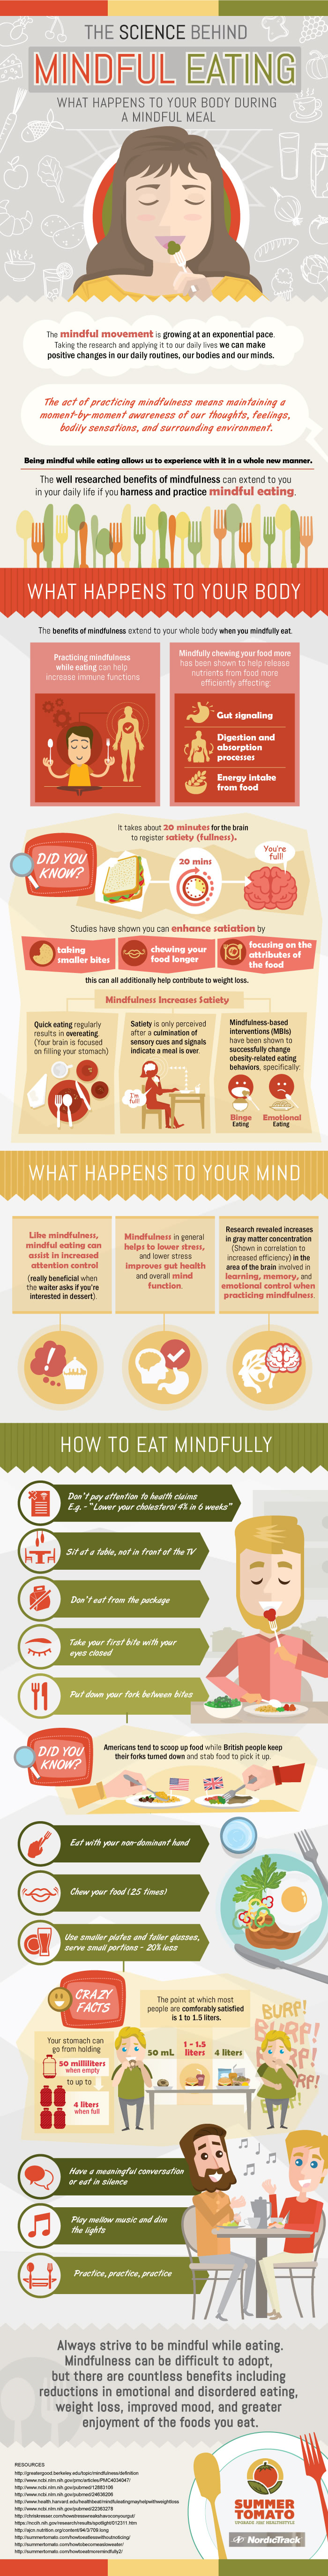 The Science Behind Mindful Eating - Infographic